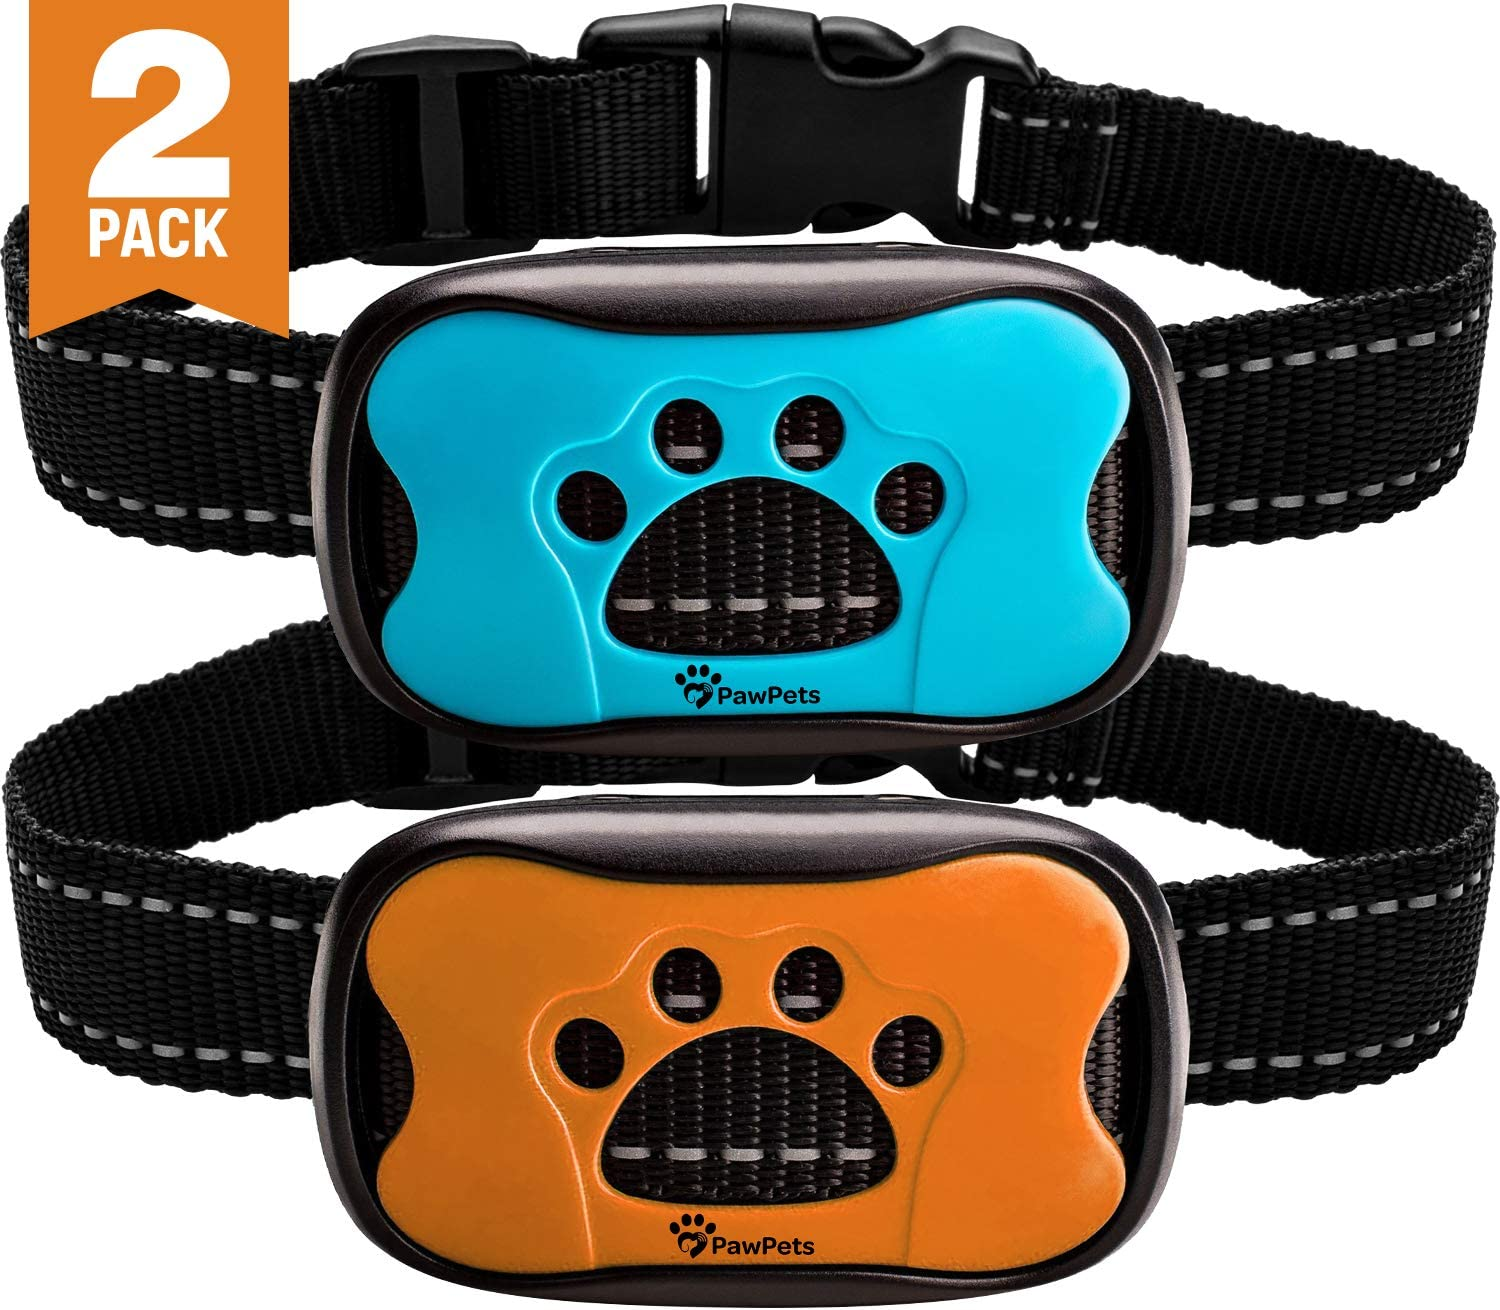 PawPets Anti Bark Collar - No Shock Training Dog Collar - Humane with Vibration and Sound Barking Collar for Small Medium Large Dogs 5-110lbs - 2 Pack